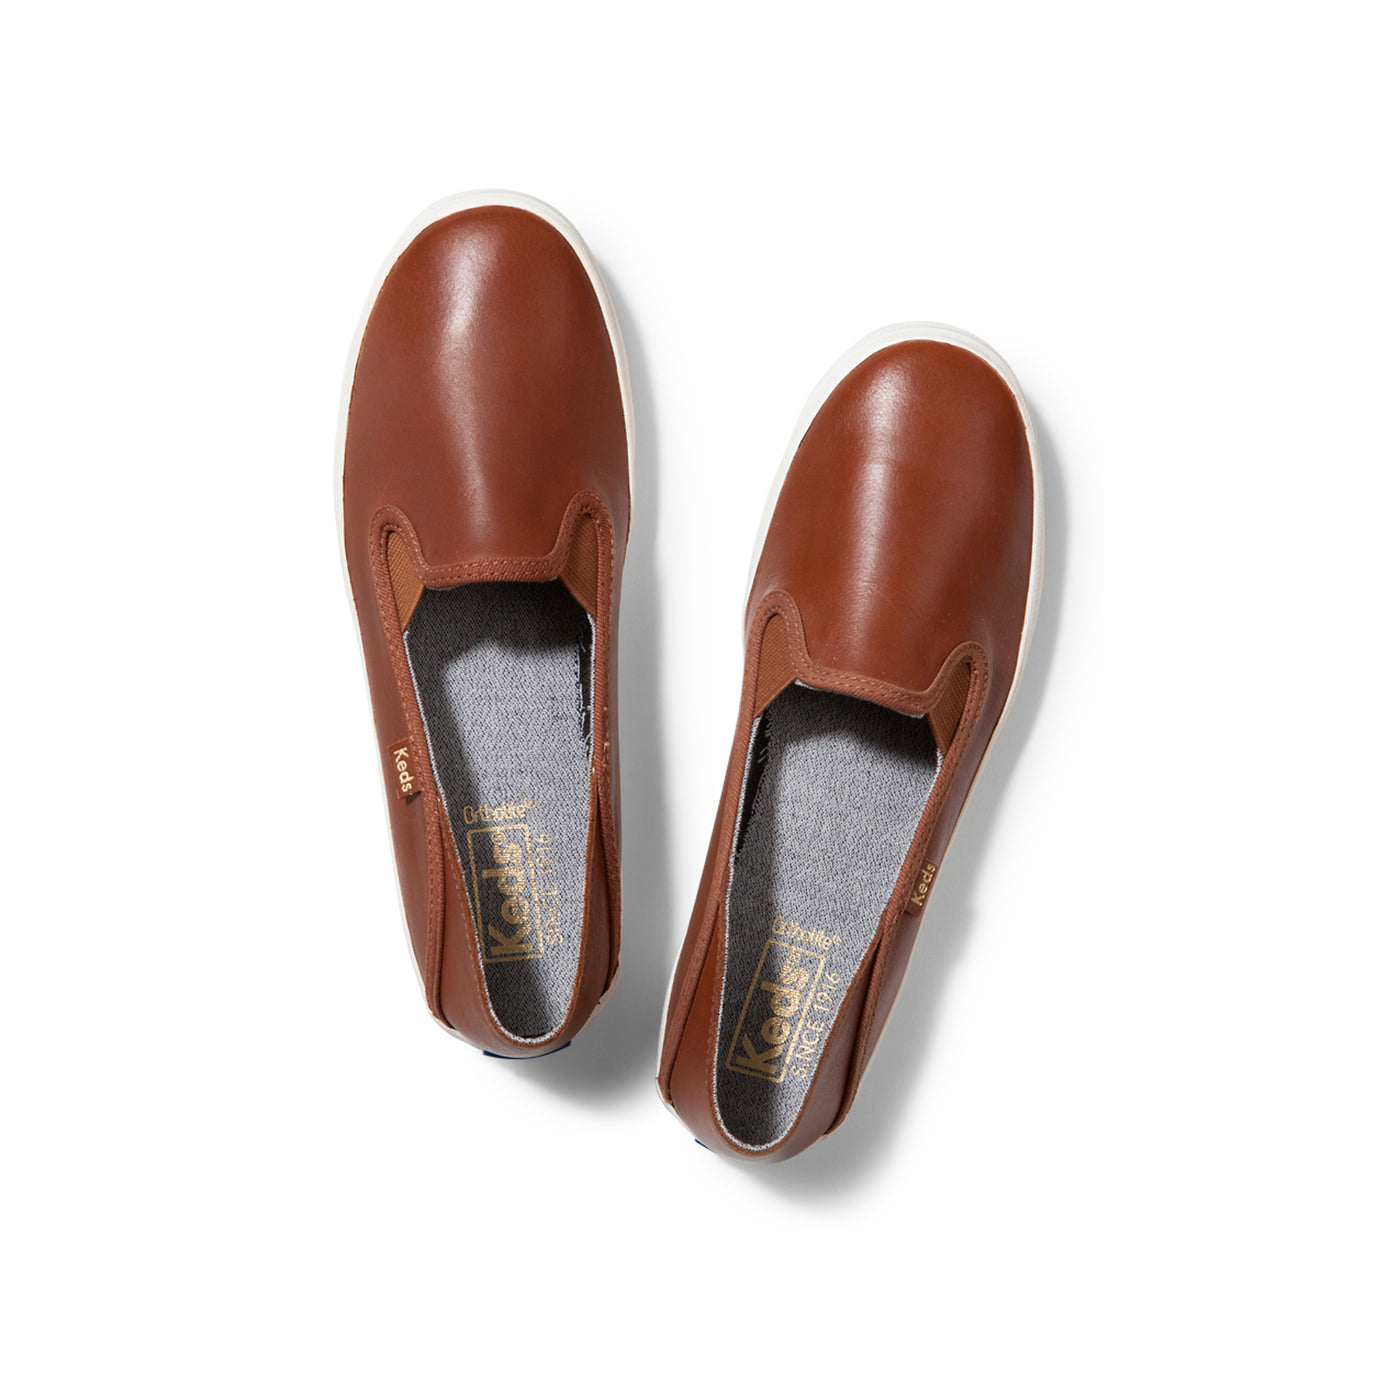 Leather Slip On Flats - Everyday Spring